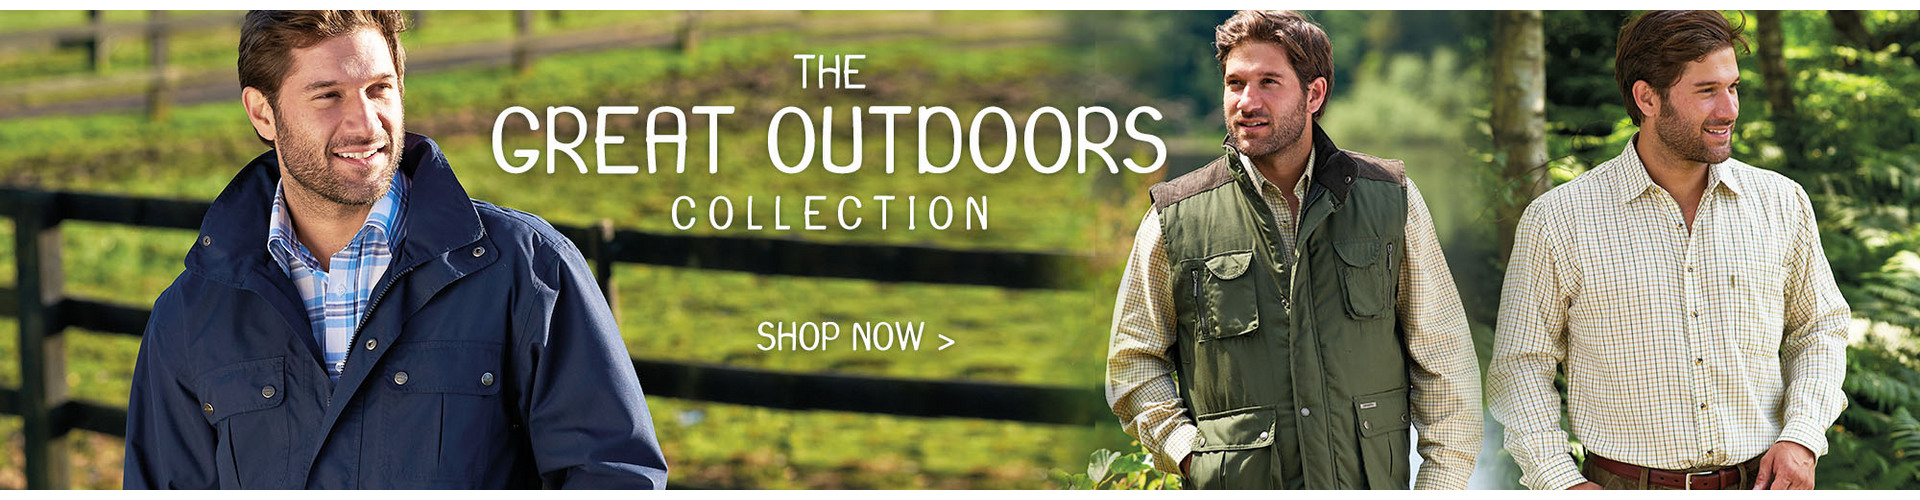 New Outdoor/Gardening Range